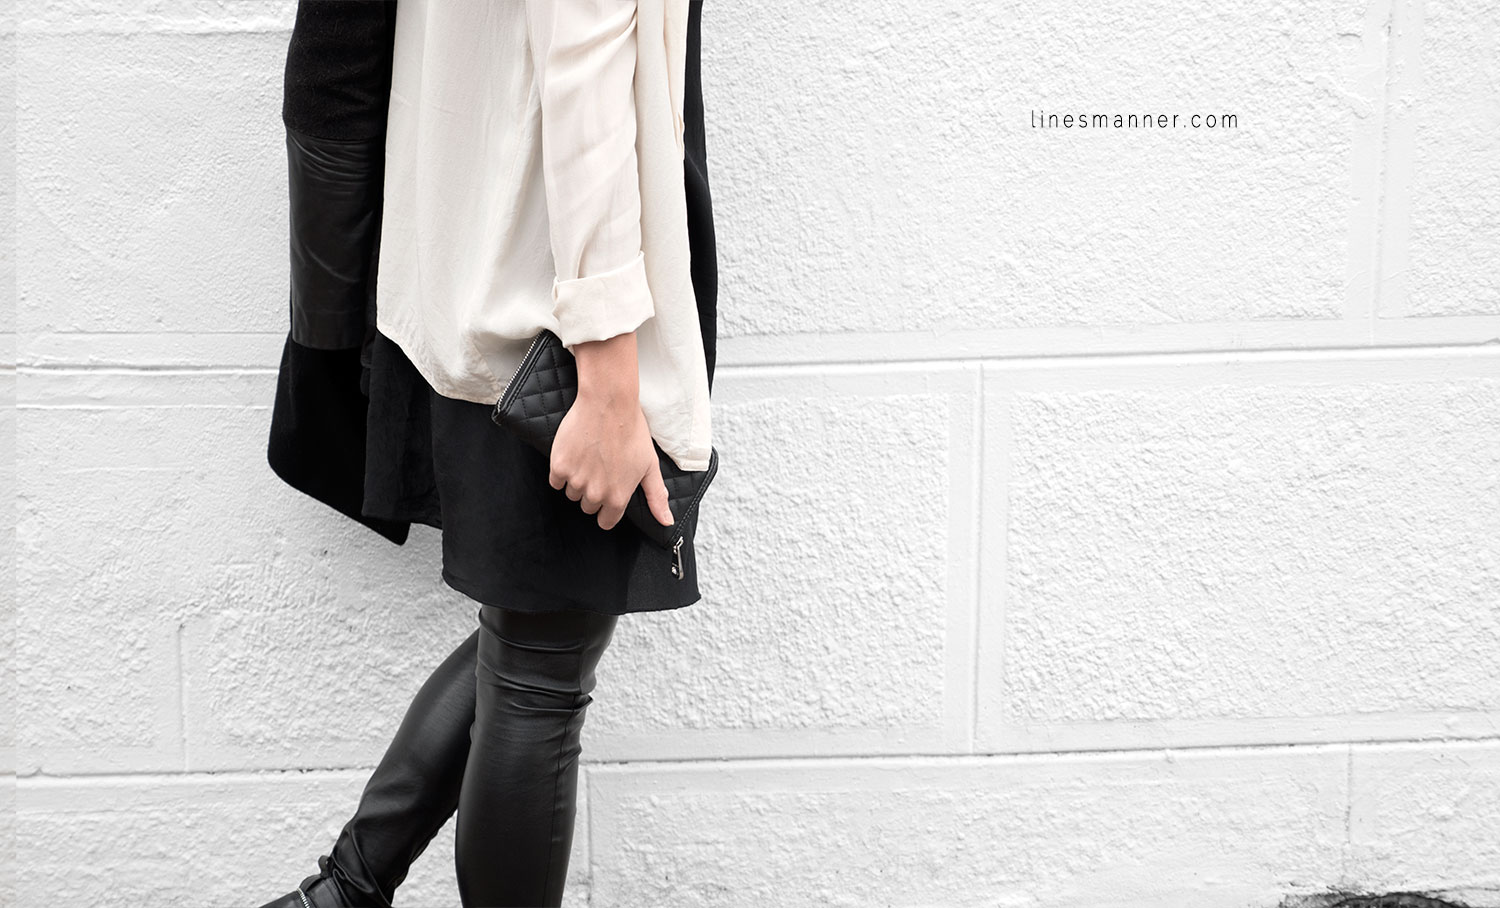 Lines-Manner-Timeless-Comfort-Essentials-Monochrome-Trend-Minimal-Textures-Fall-Leather-Details-Simplicity-Modern-Basics-Outfit-Structure-Relaxed-Leather-Luxurious-Sophistication-5